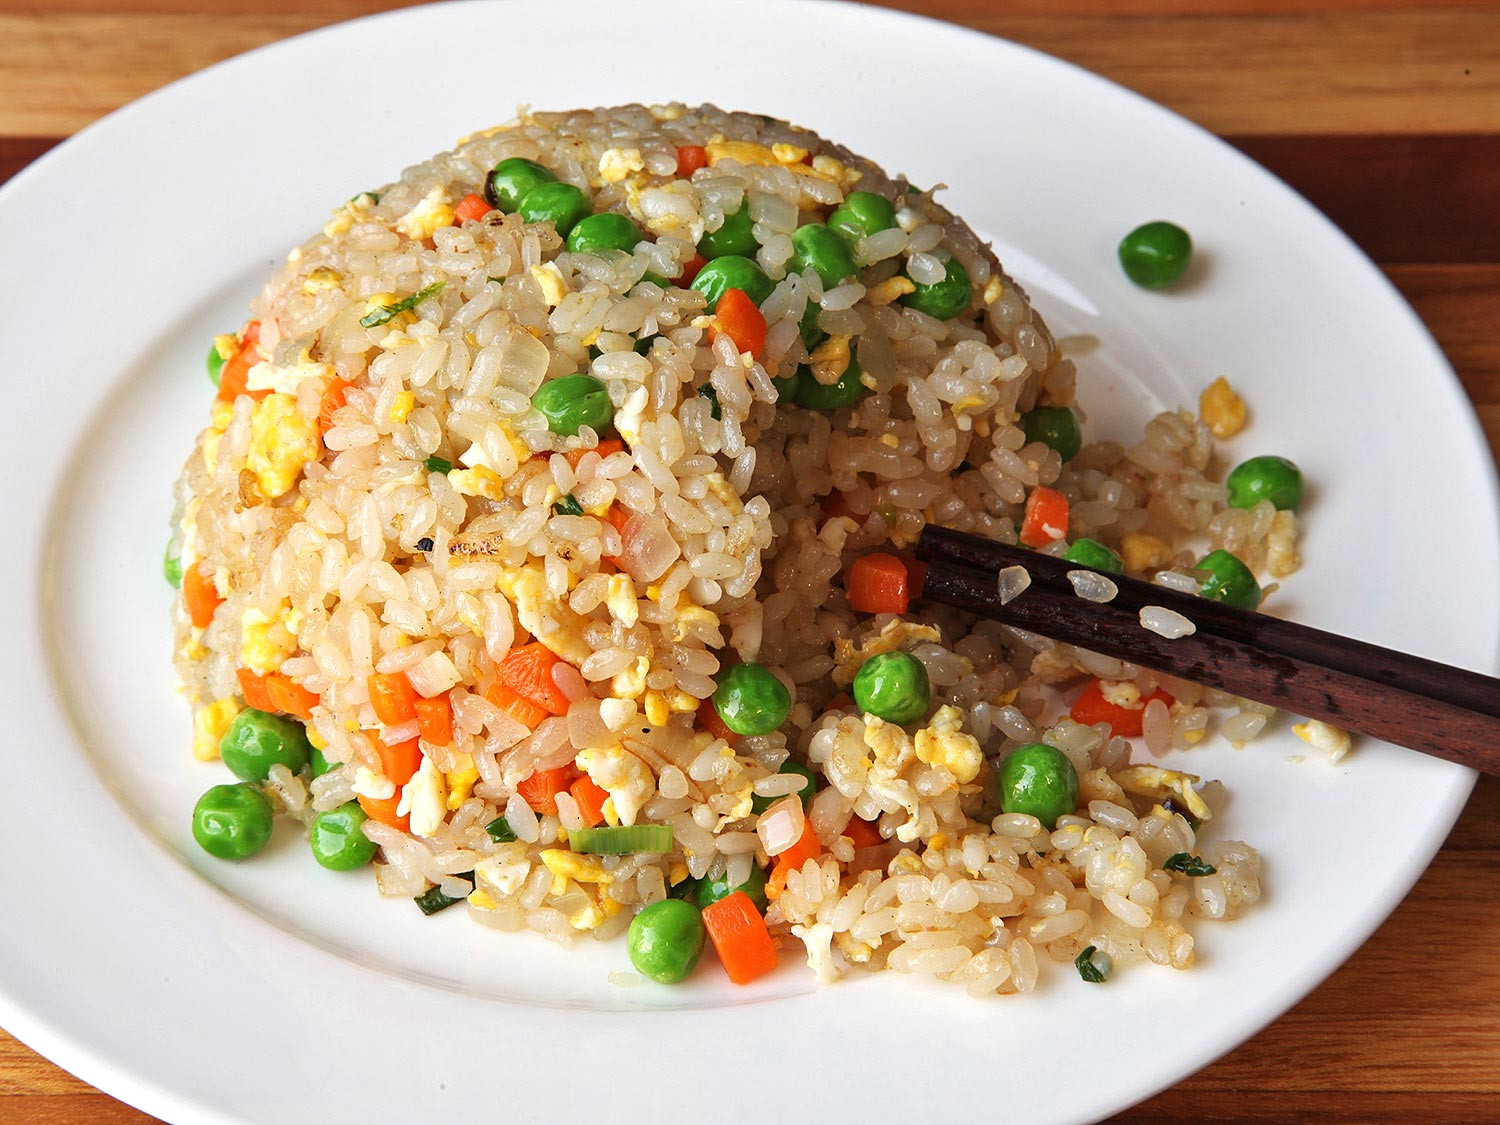 Chinese Fried Rice  The Food Lab Follow These Rules For the Best Fried Rice